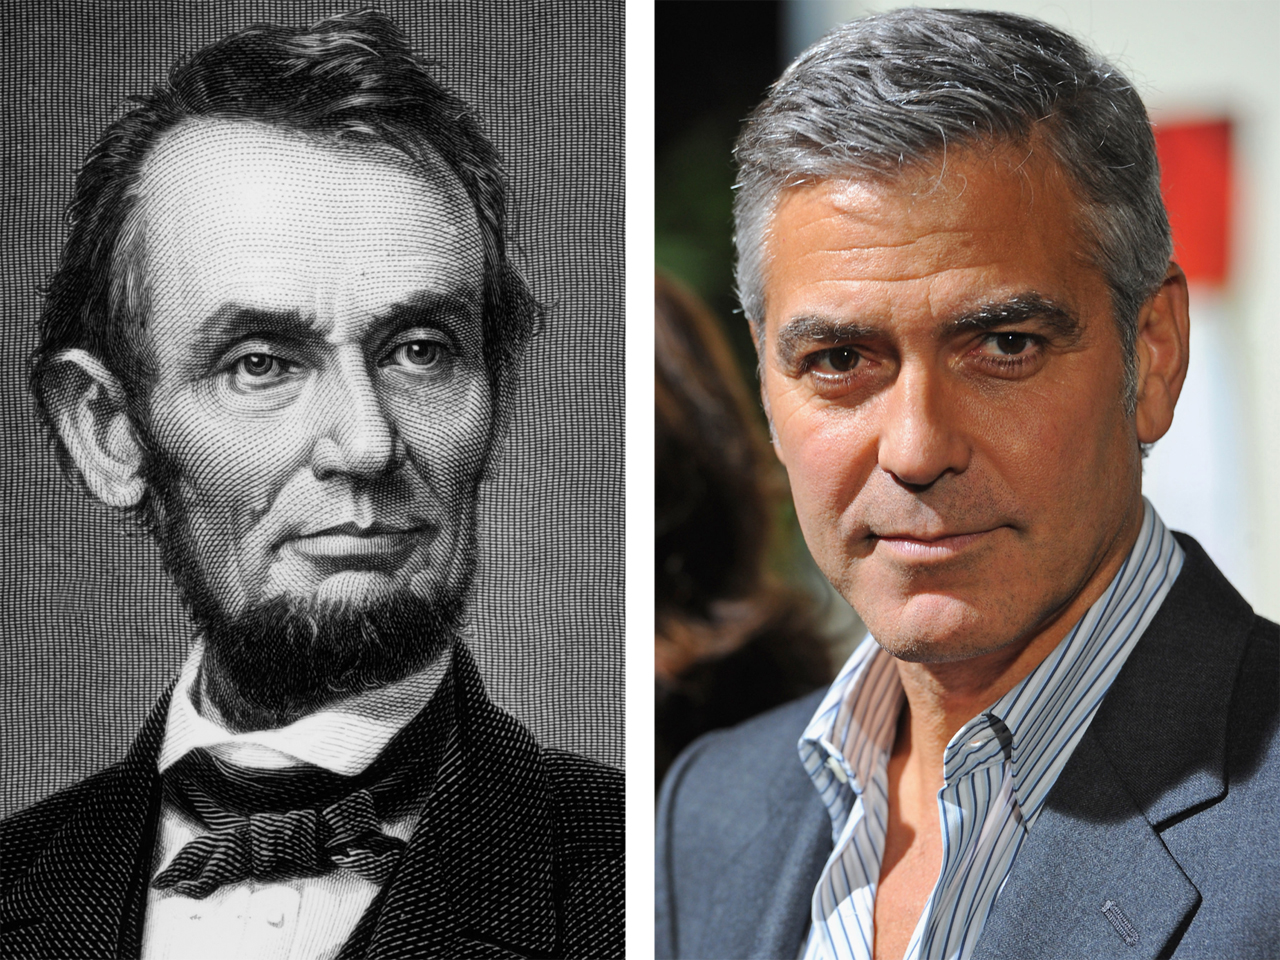 George Clooney Is Abraham Lincoln S Distant Cousin Says